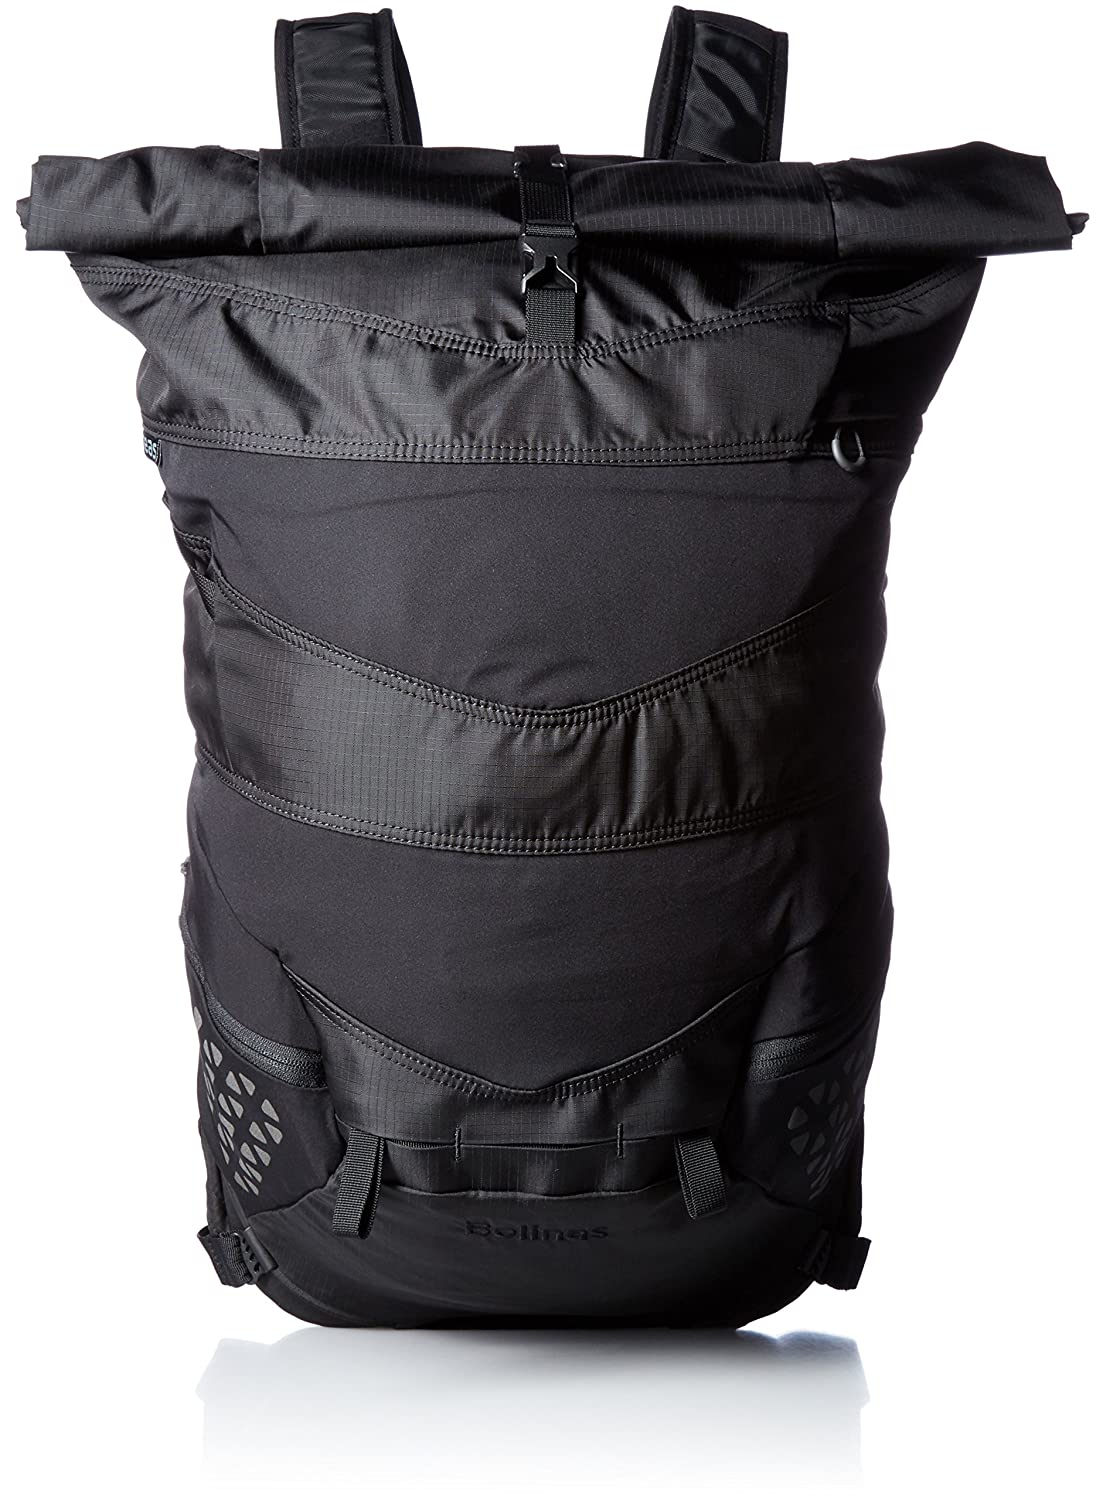 Boreas Bolinas Backpack - Obsidian Black